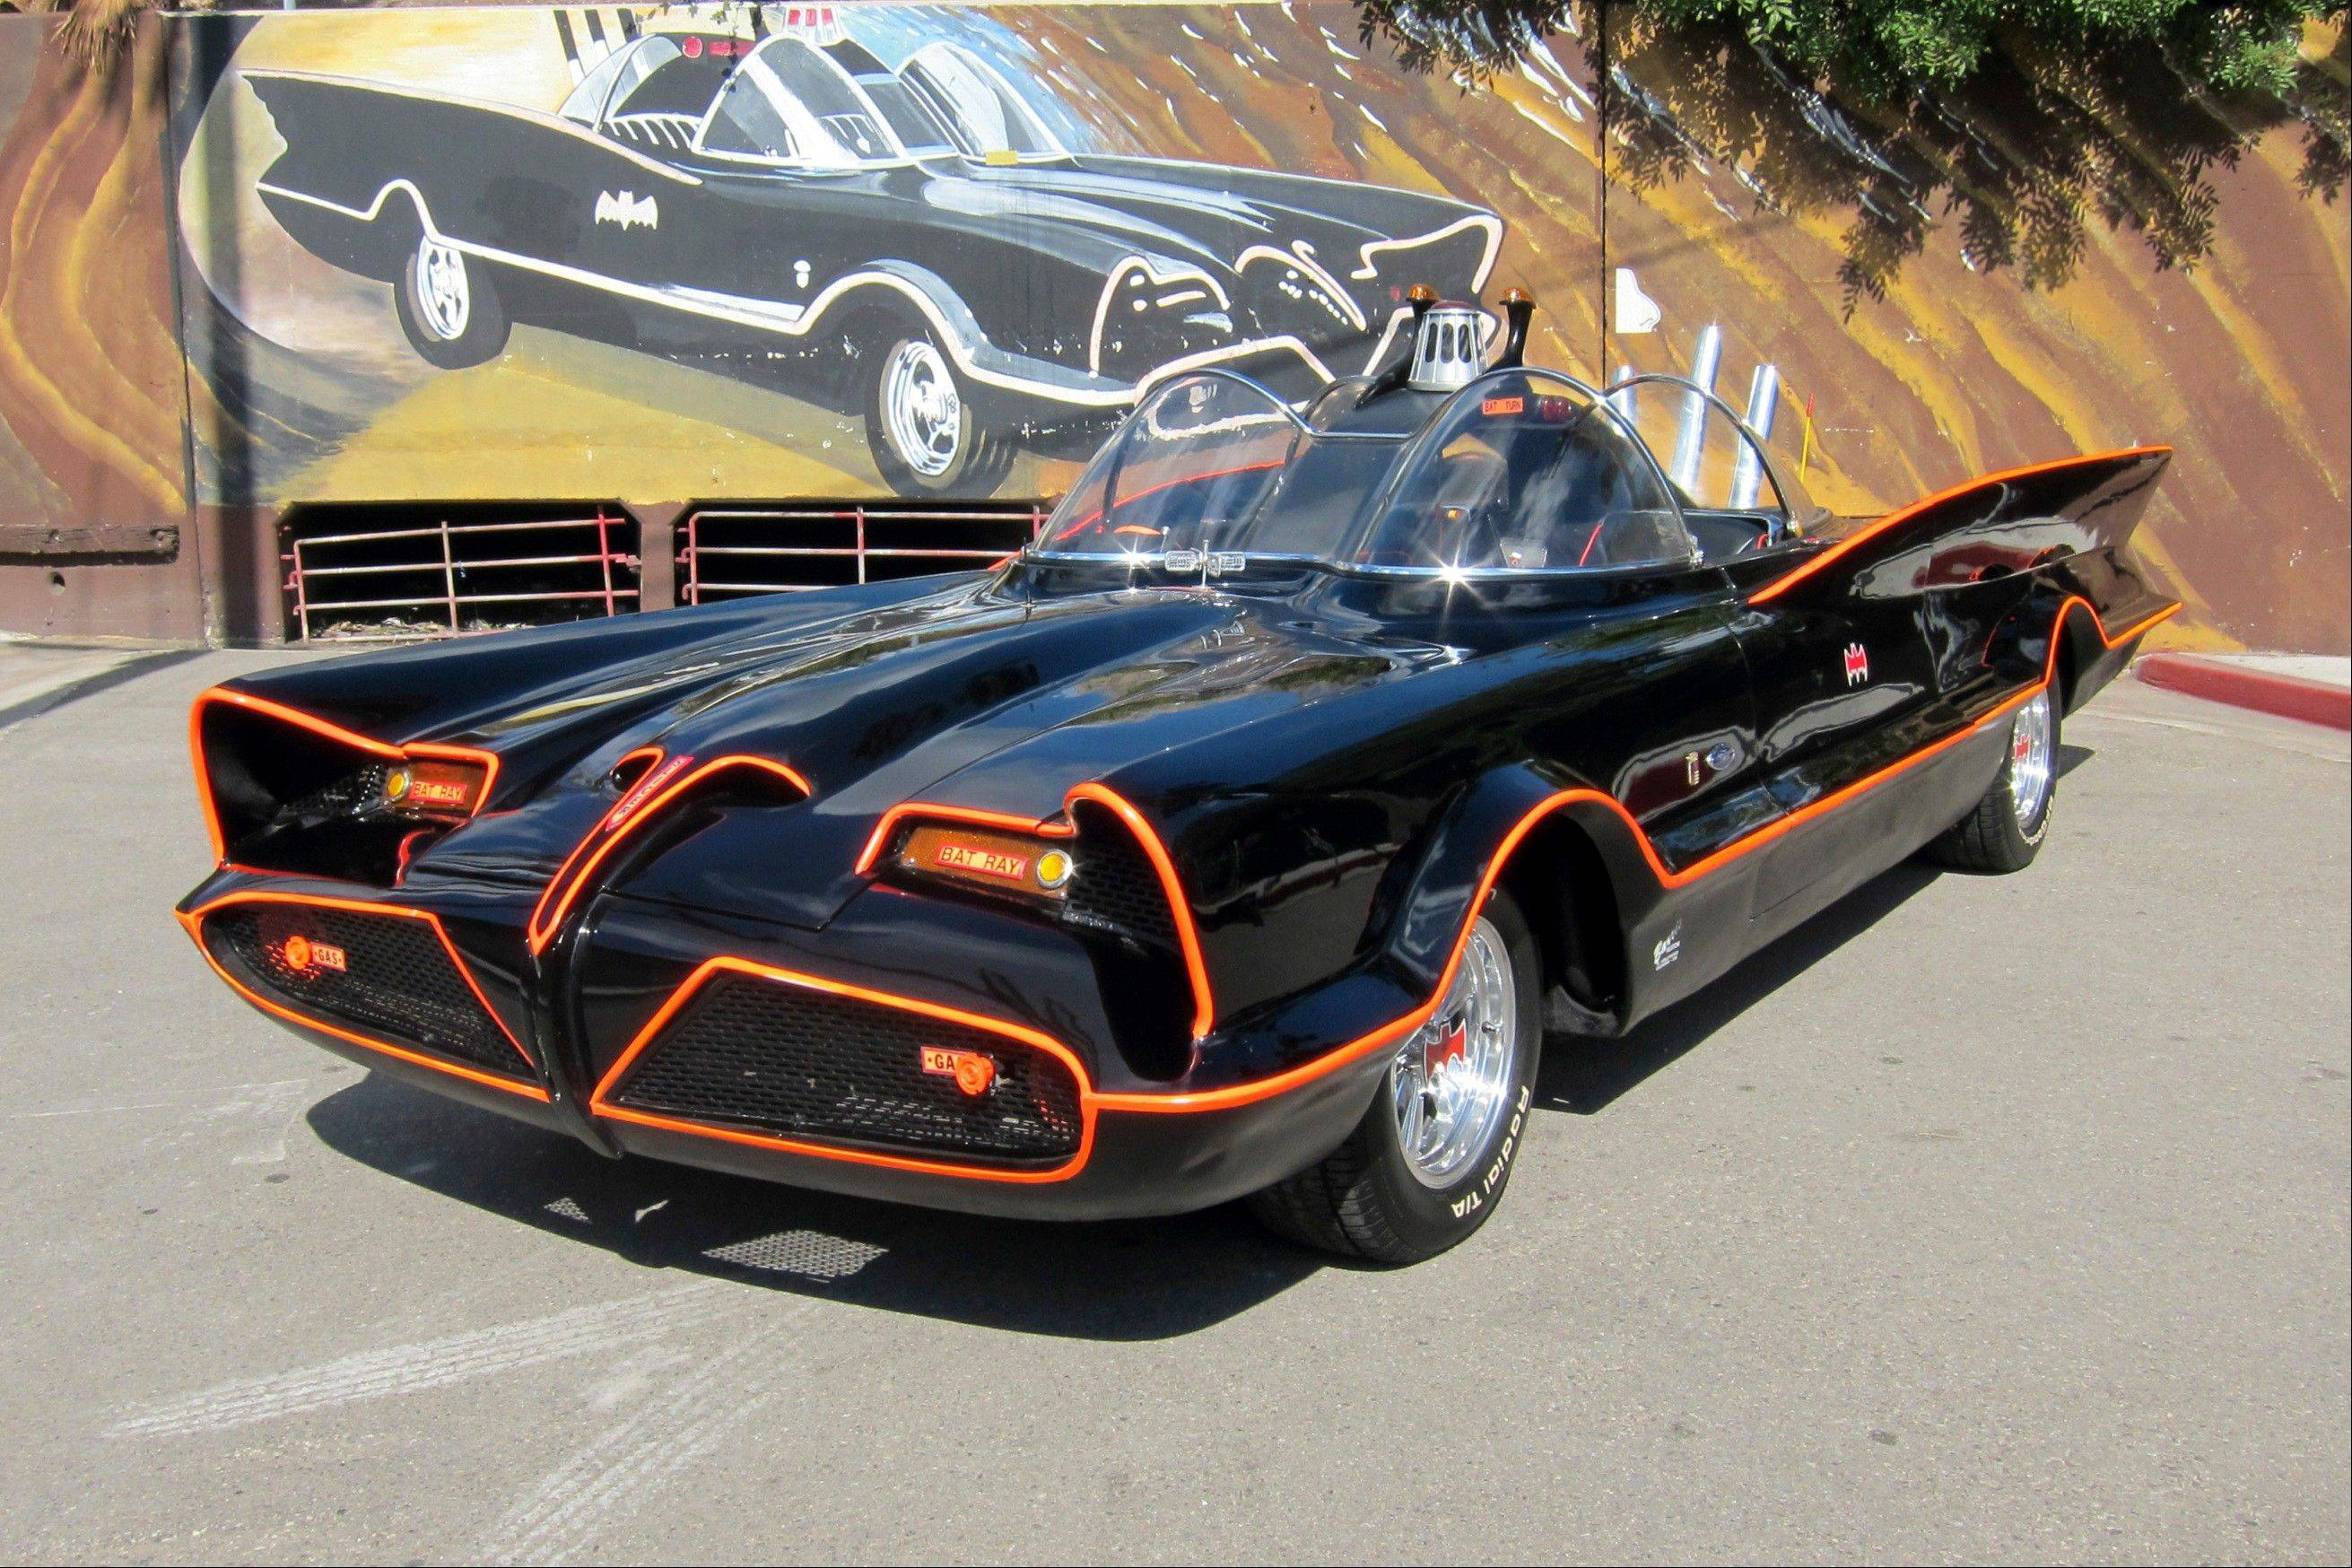 The original Batmobile in Los Angeles. Batman's original ride, from the 1960s TV series, has sold at auction for $4.2 million.